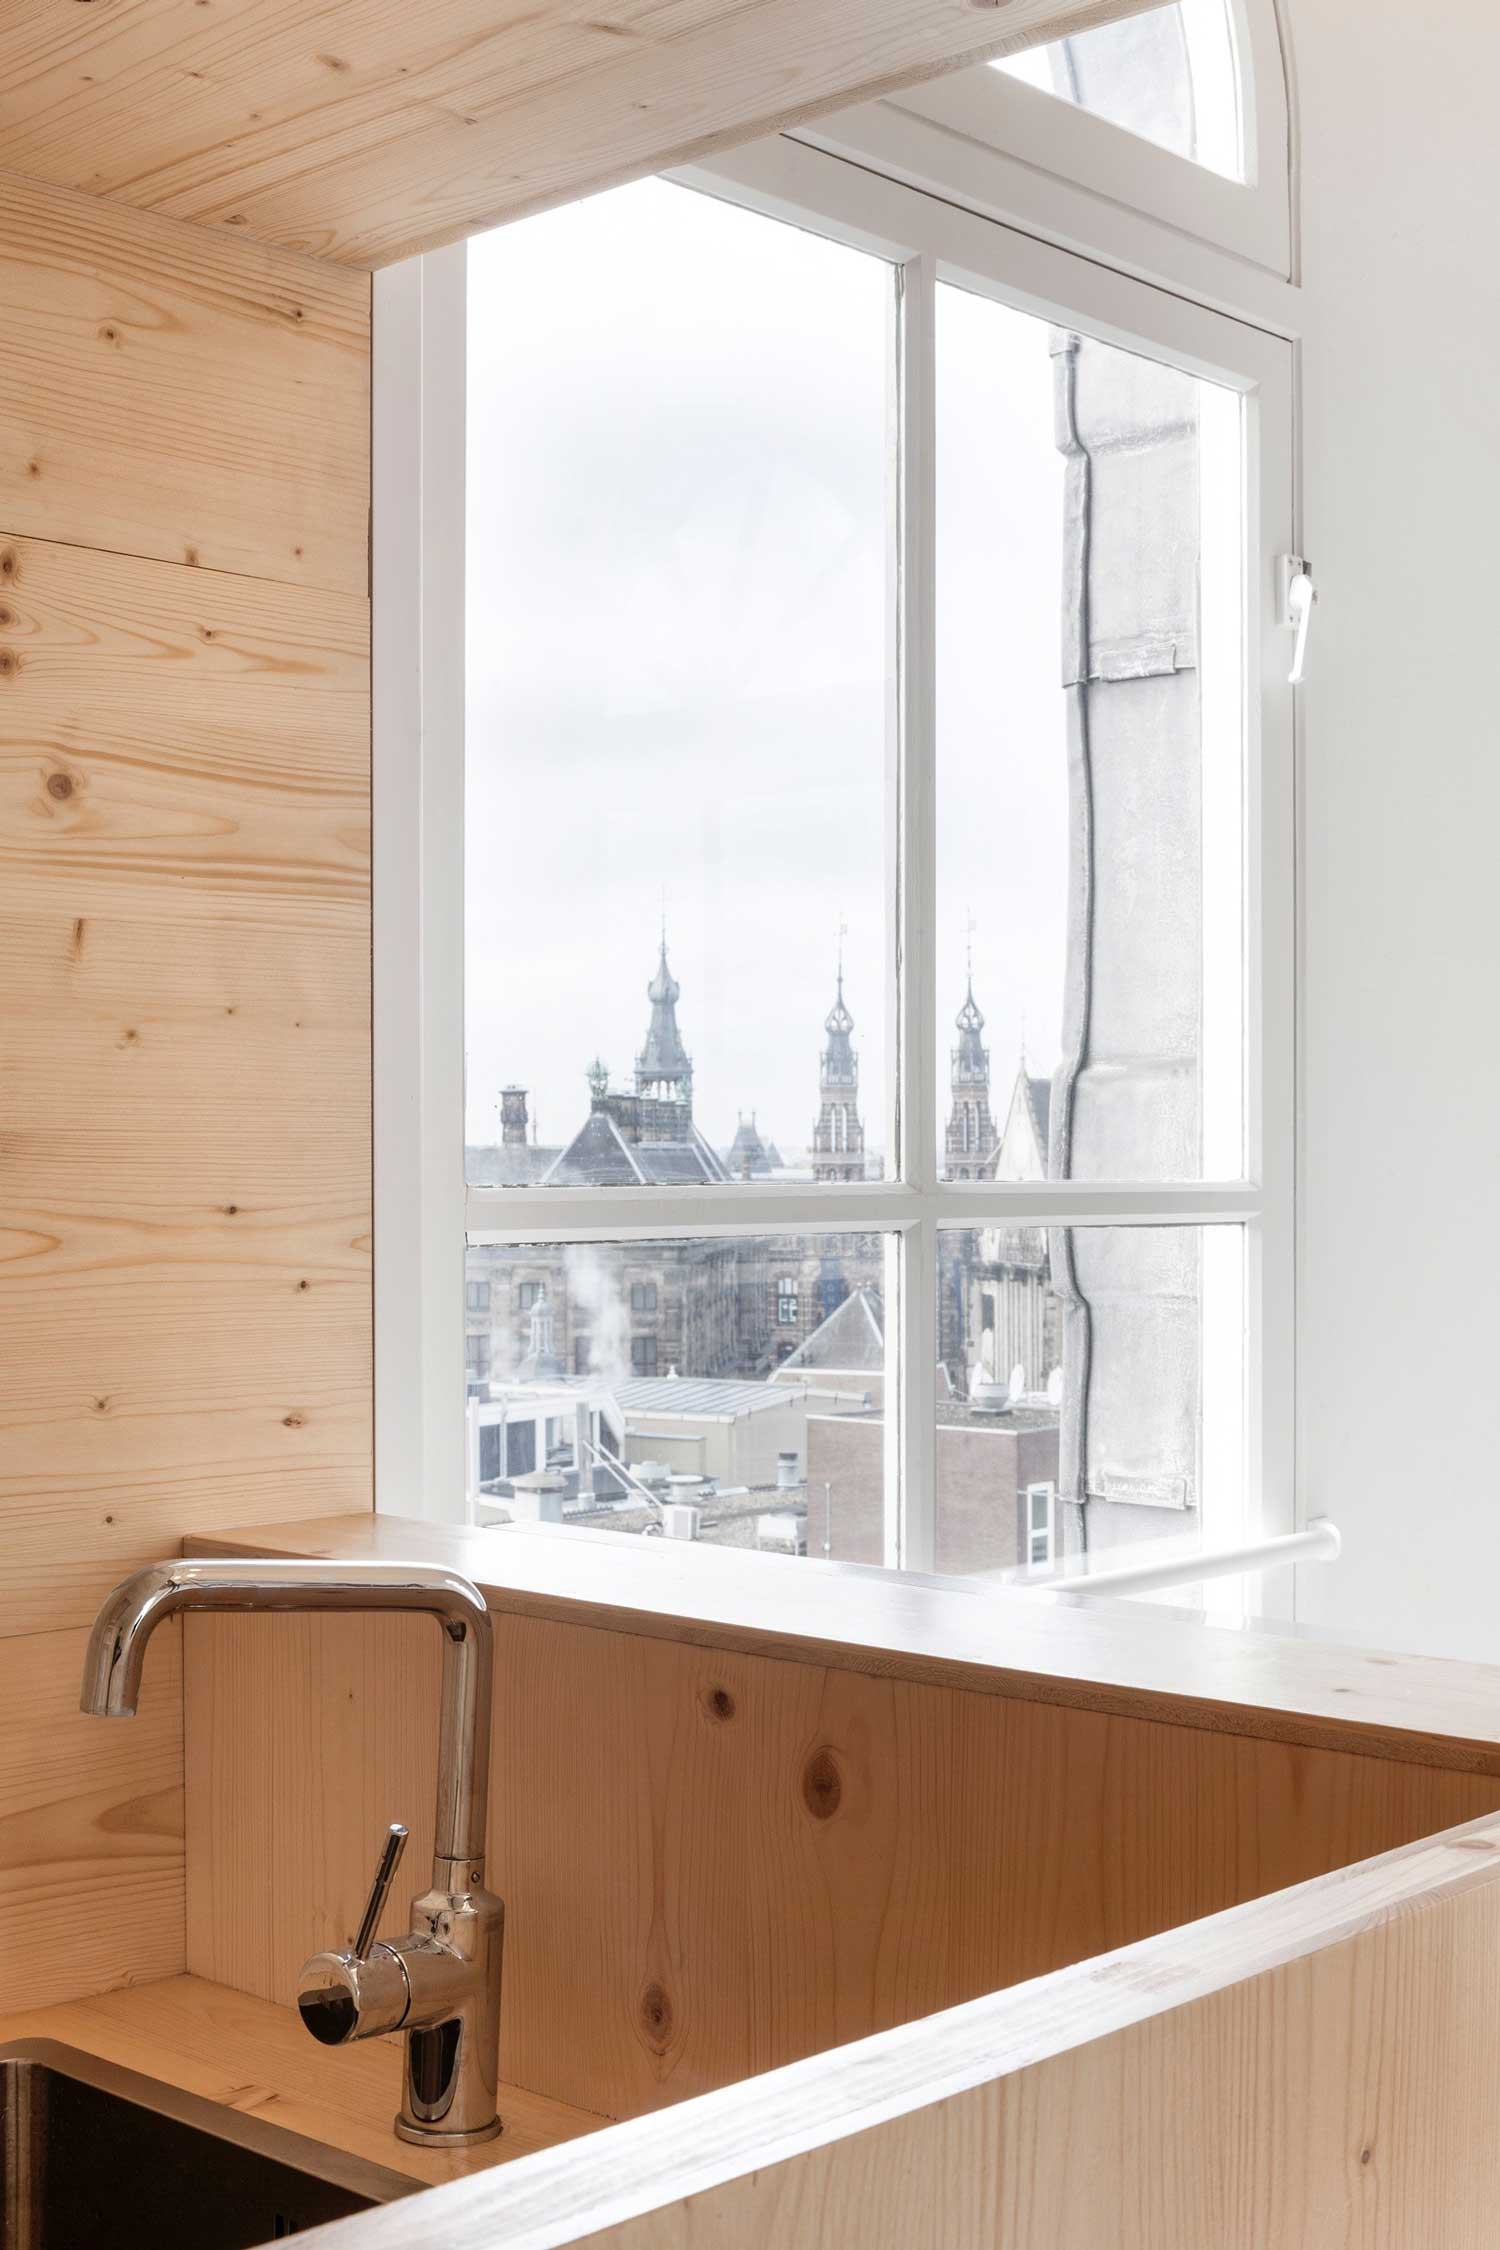 Room On The Roof' by i29 in Amsterdam | Yellowtrace